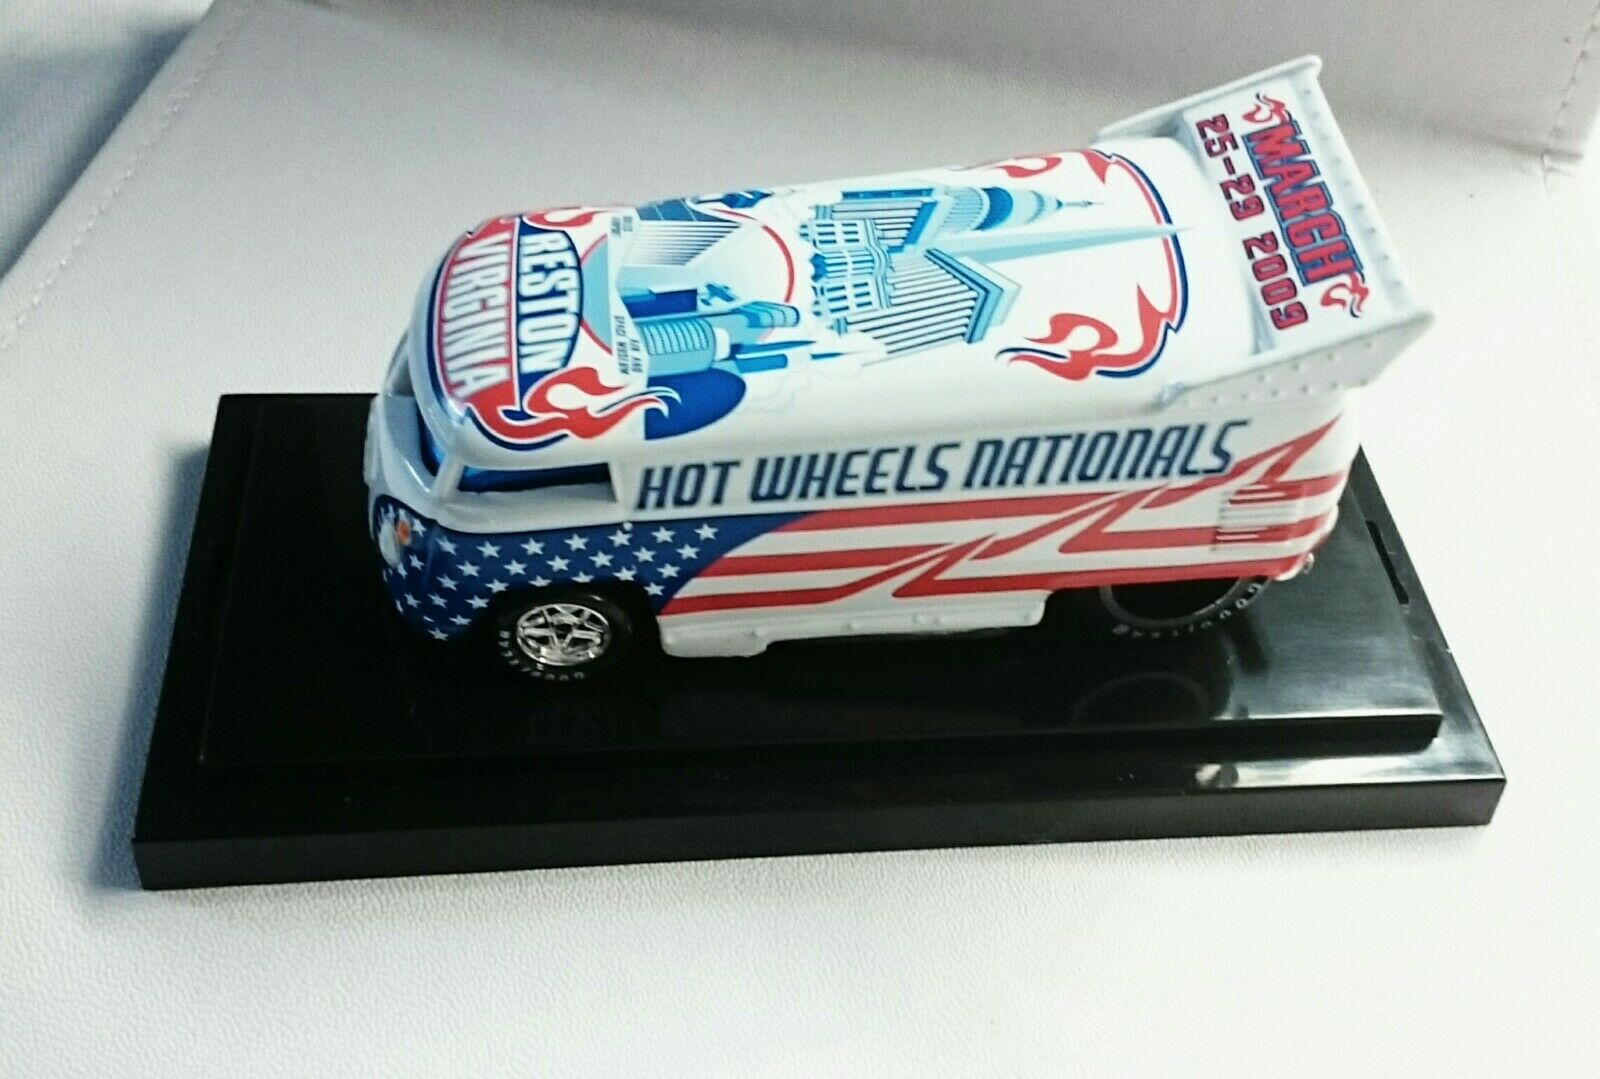 VW DRAG BUS HOT WHEELS 9TH NATIONAL RESTON VIRGINIA 1187 1300 VOLKSWAGEN DIECAST